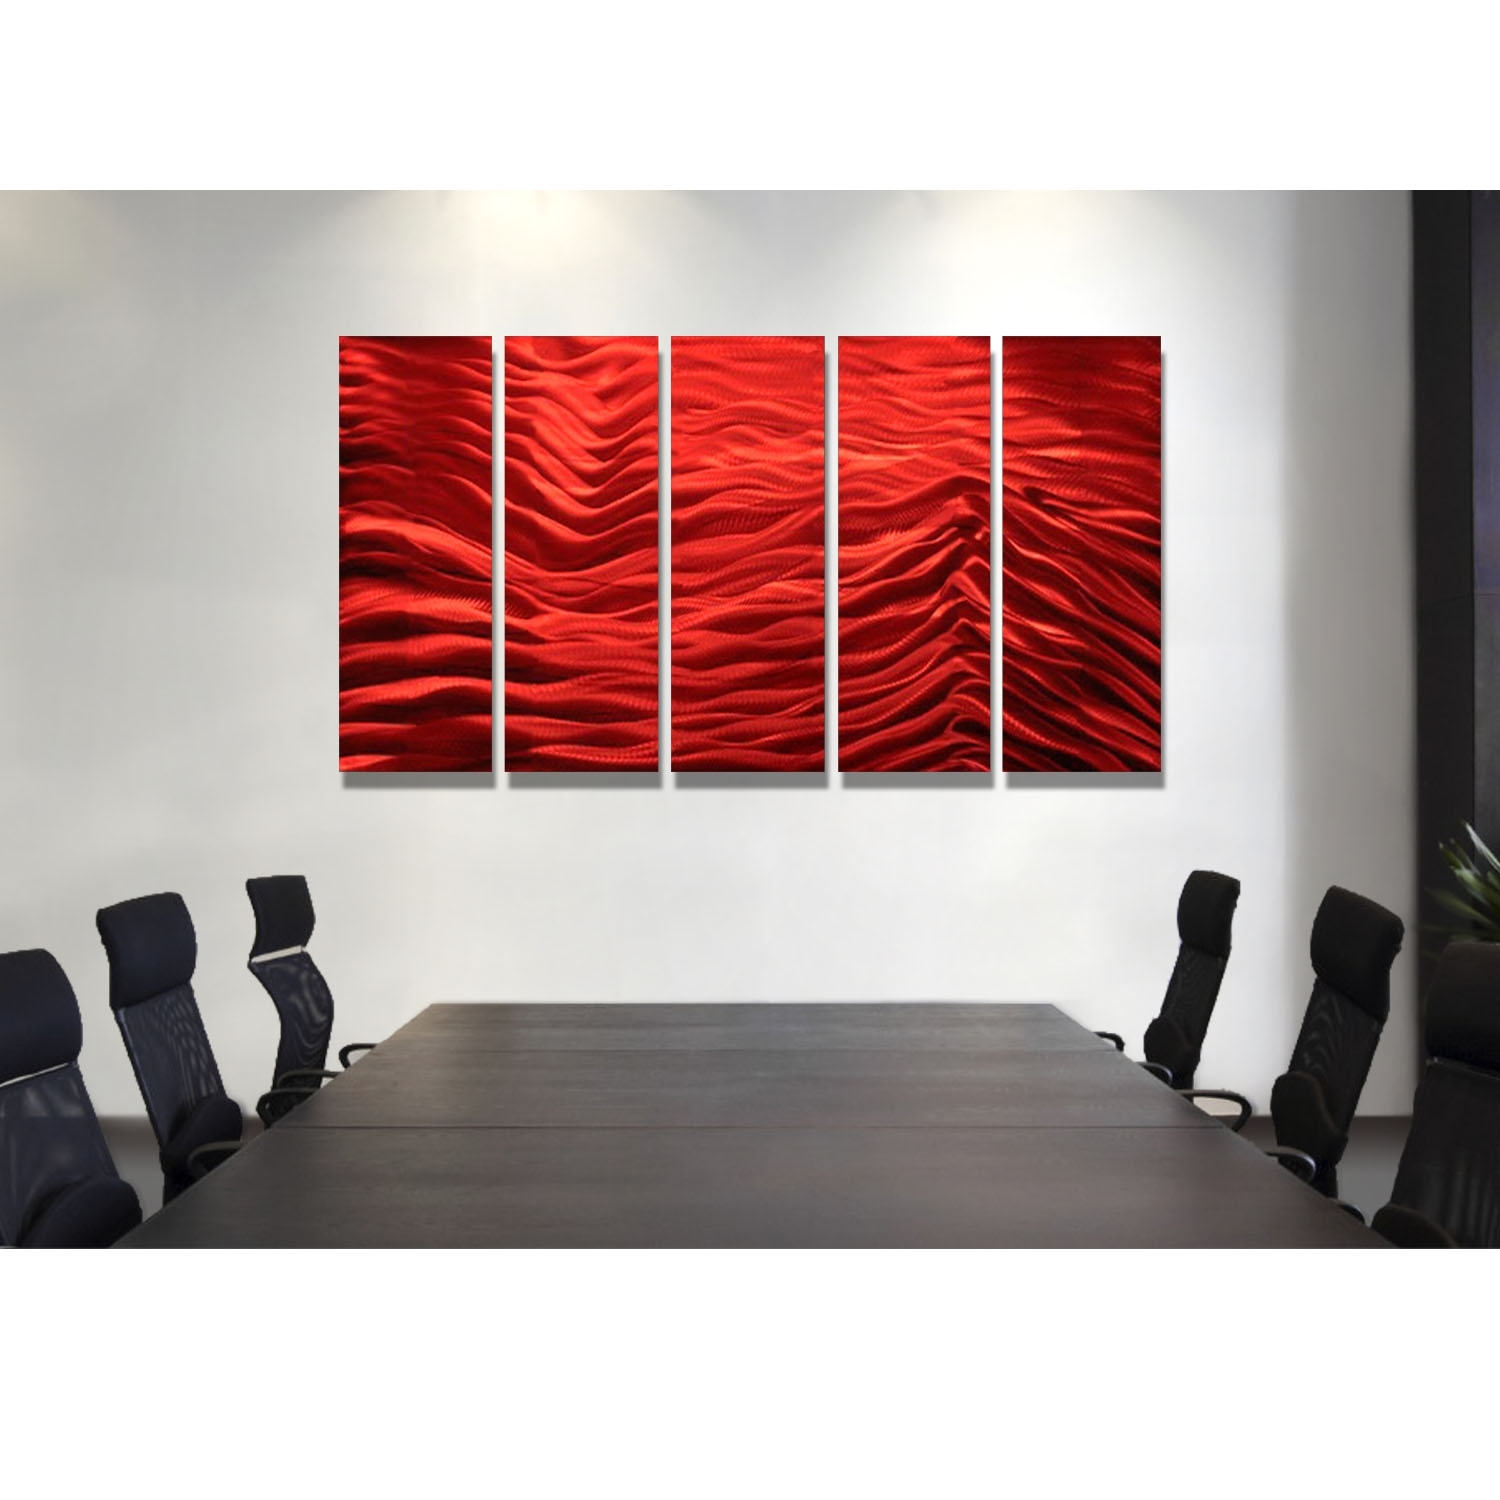 Red Inertia – Red Metal Wall Art – 5 Panel Wall Décorjon Allen With Current Red Wall Art (View 15 of 15)